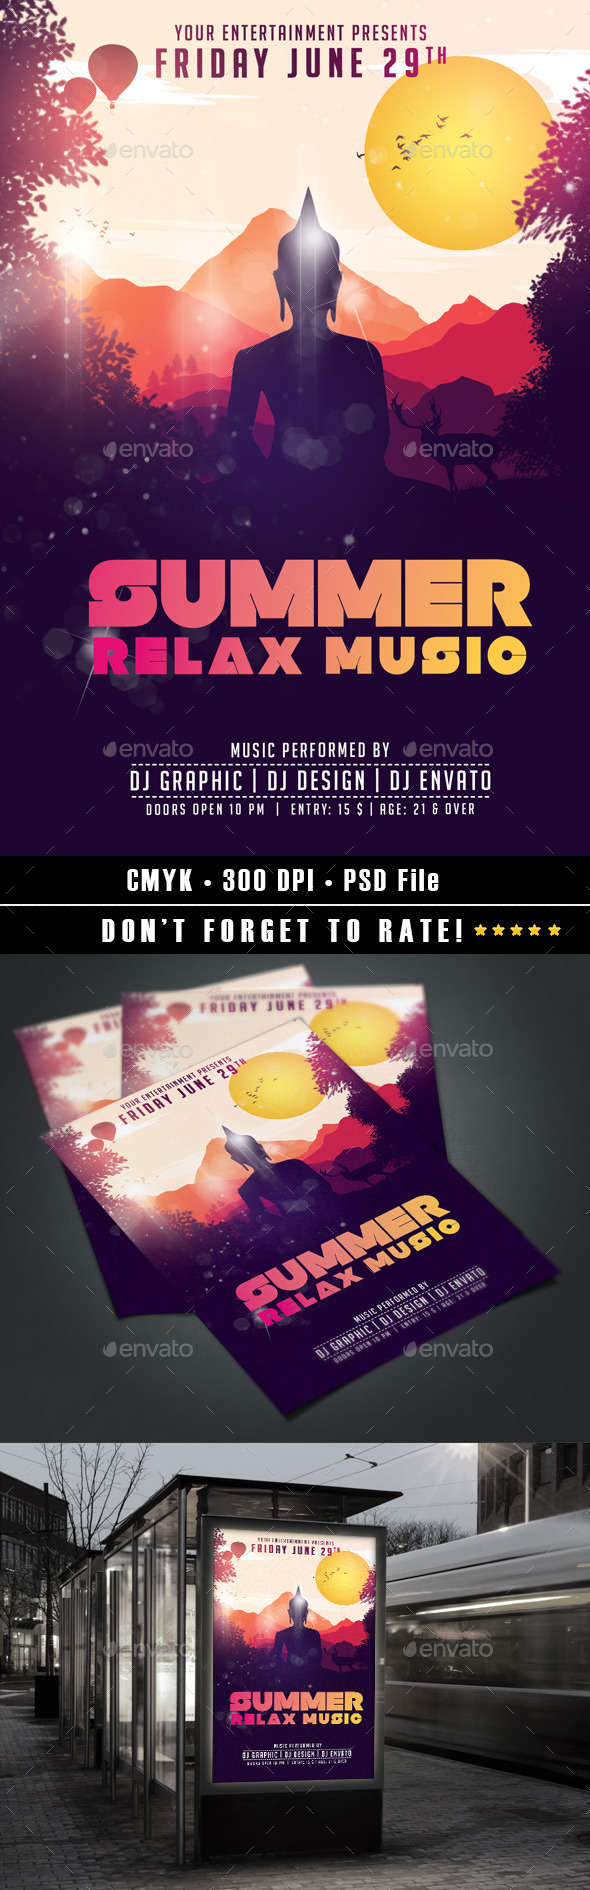 GraphicRiver Summer Relax Music Flyer 11580880